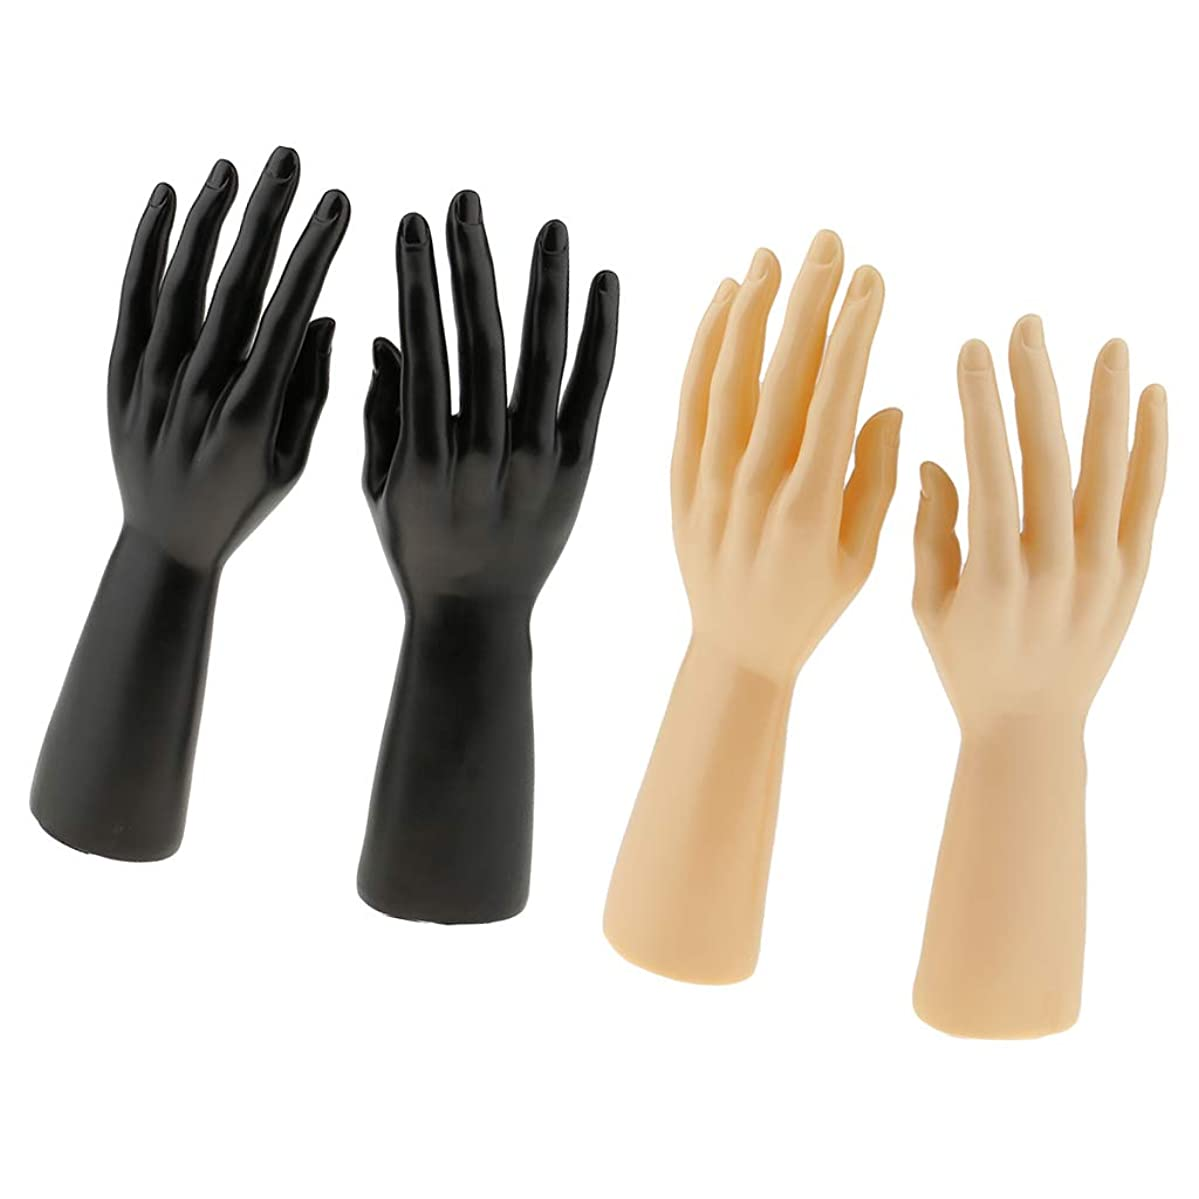 Flameer 2 Pair of Male Mannequin Hand for Jewelry Bracelet Gloves Display Right Left, Black & Skin Color